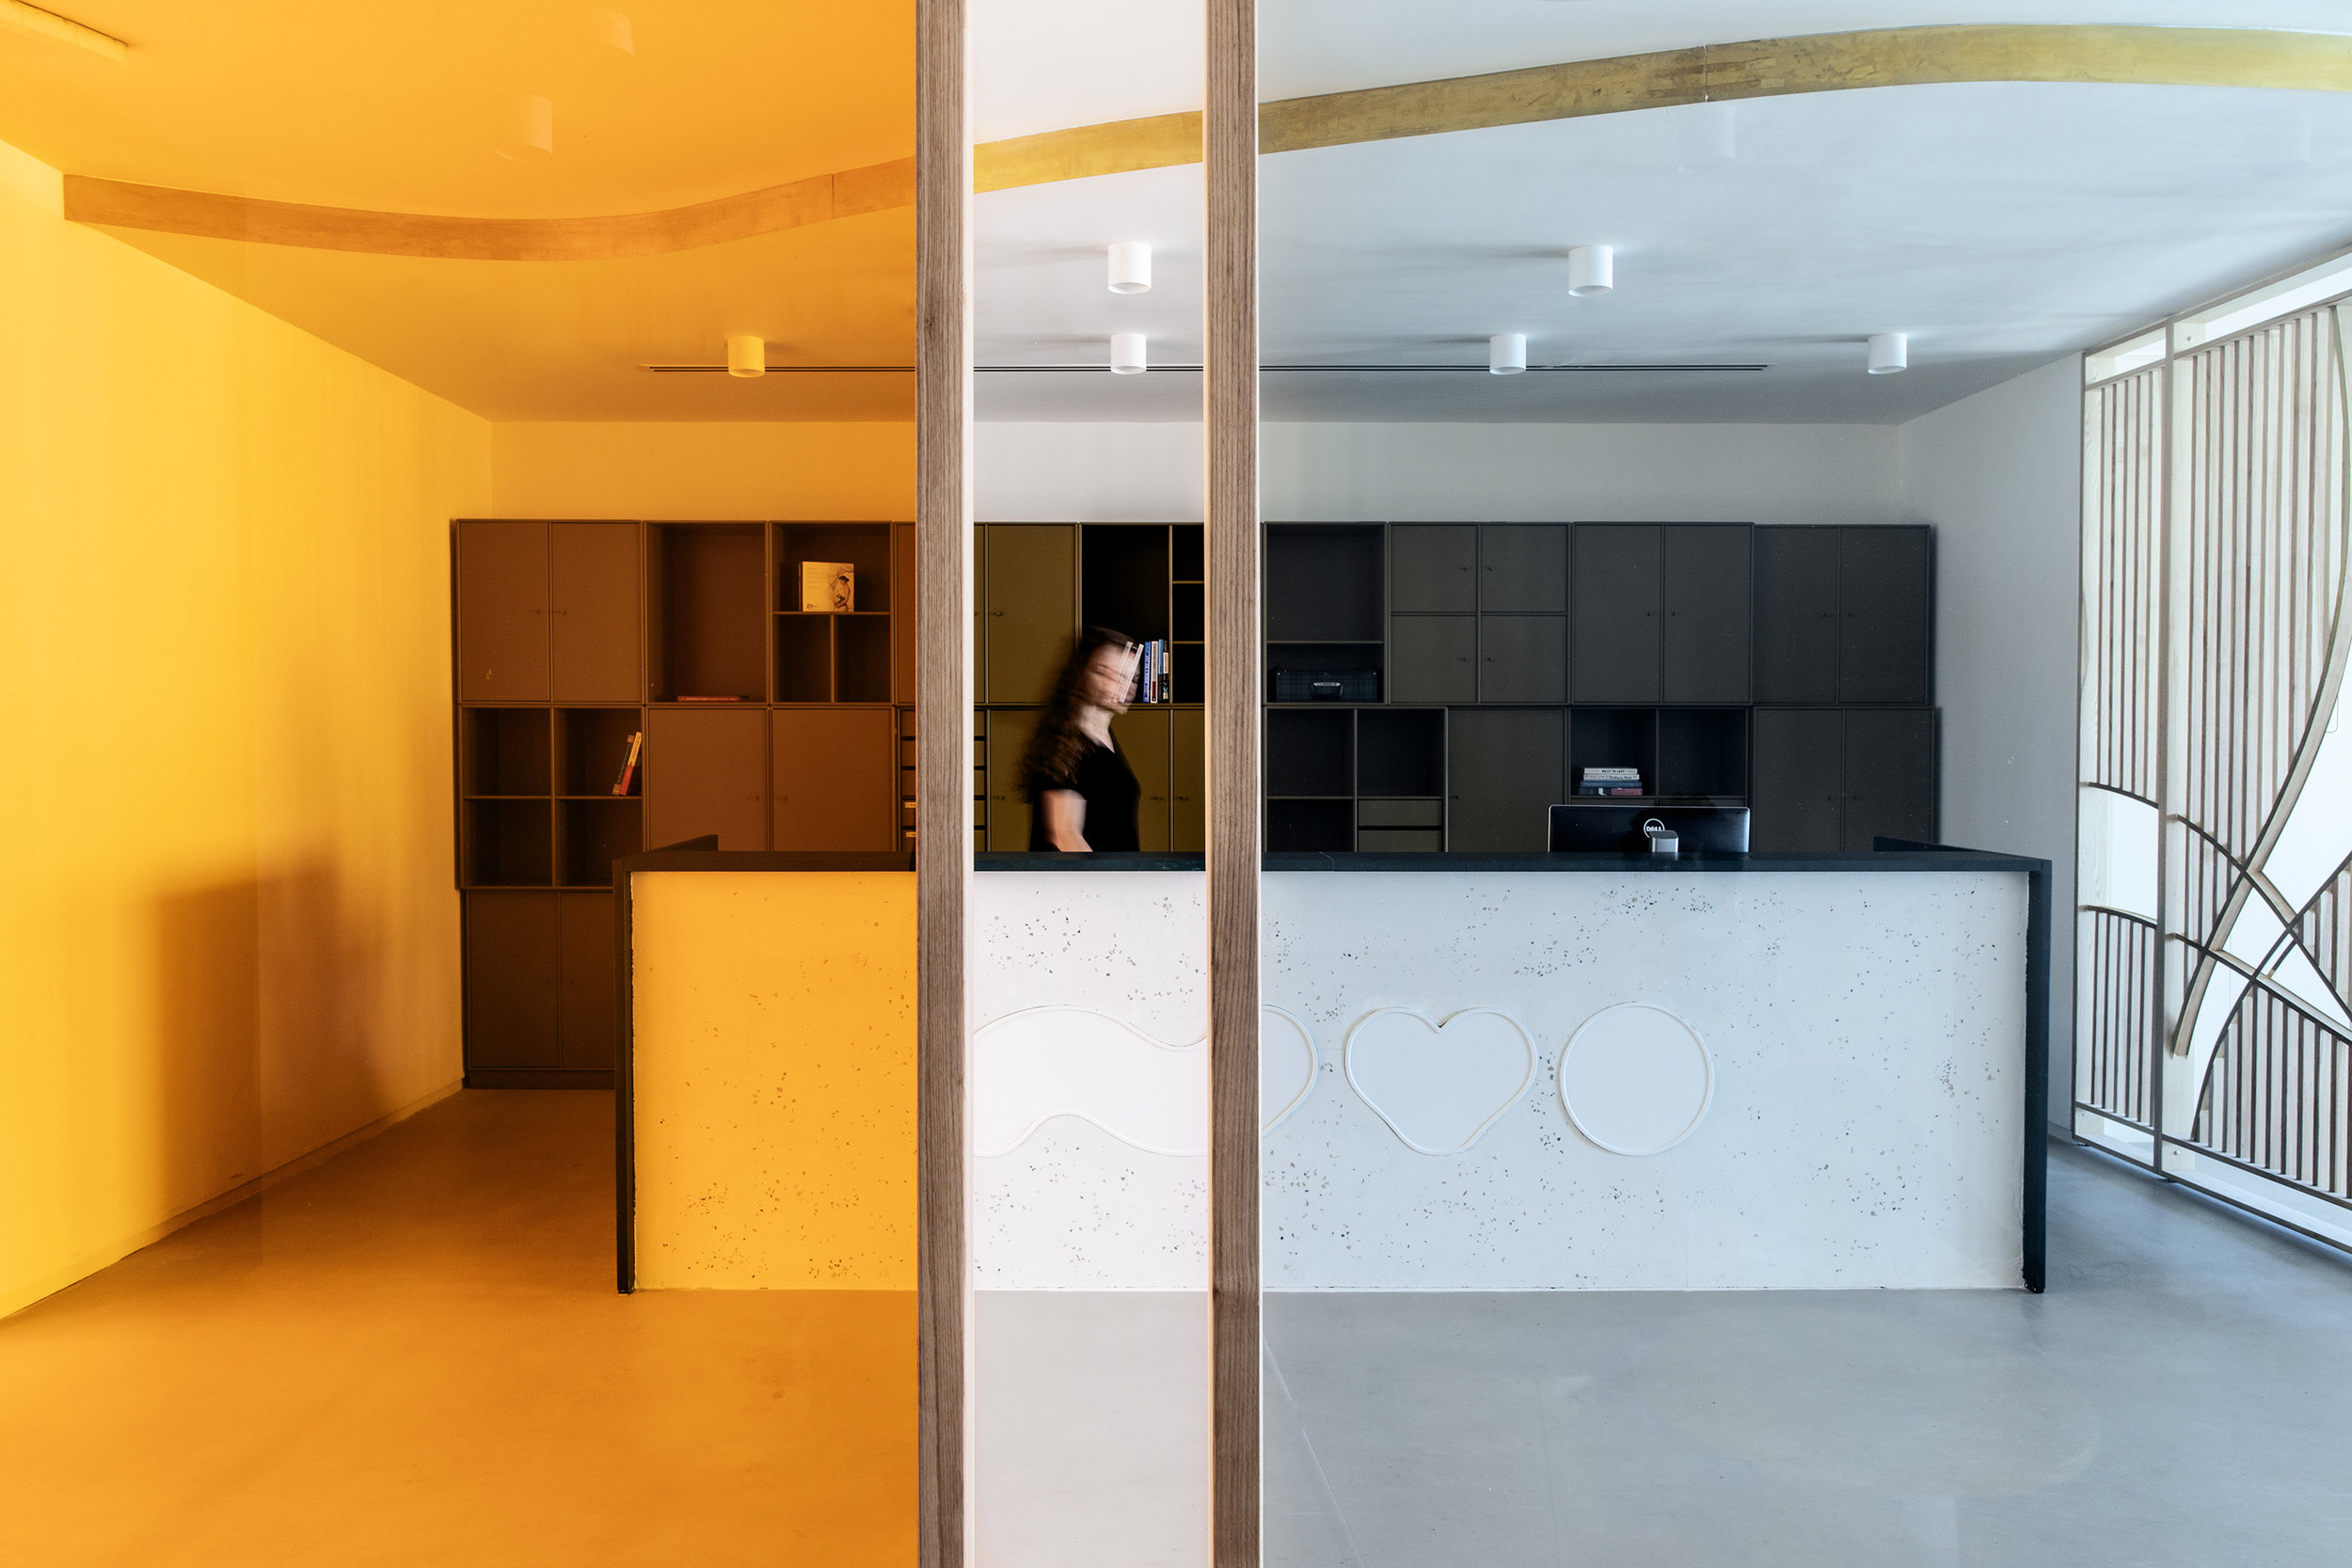 005_סטודיו רואי דוד - ROY DAVID ARCHITECTURE - NUVO OFFICES.jpg